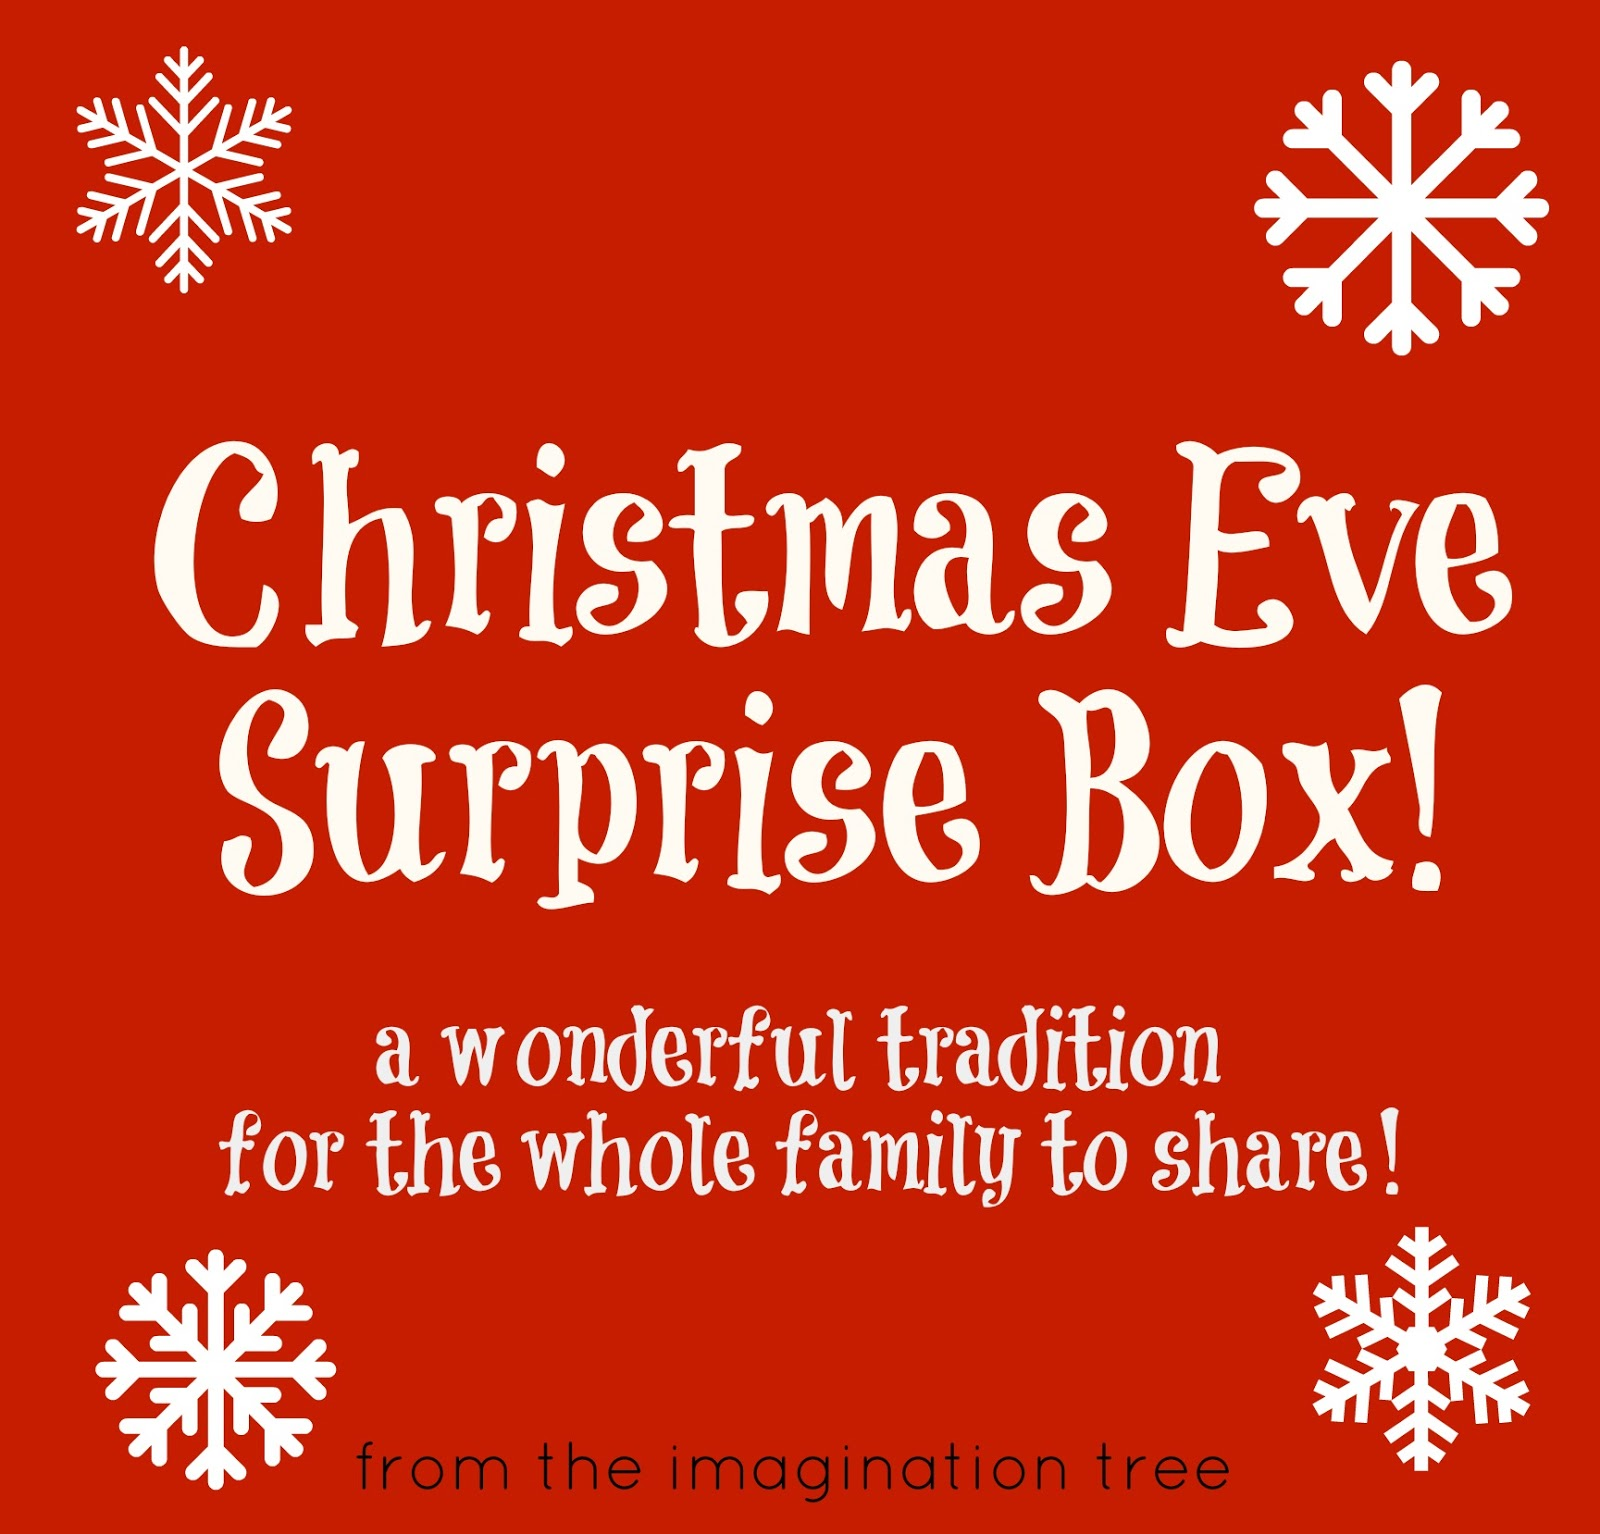 christmas eve quotes images - photo #11